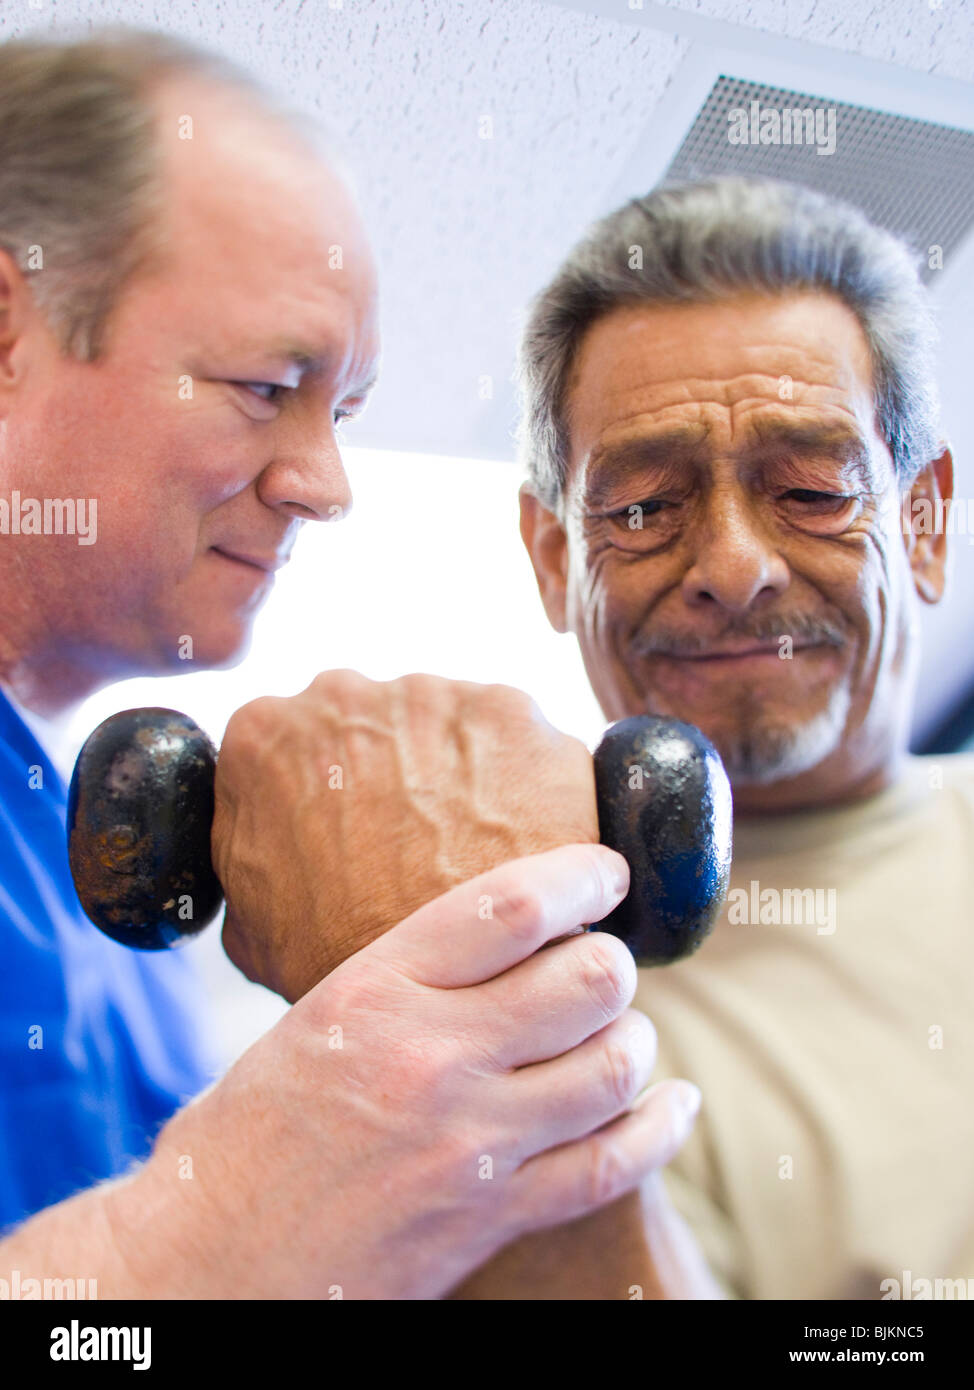 Physical Therapist assisting a man with weights - Stock Image